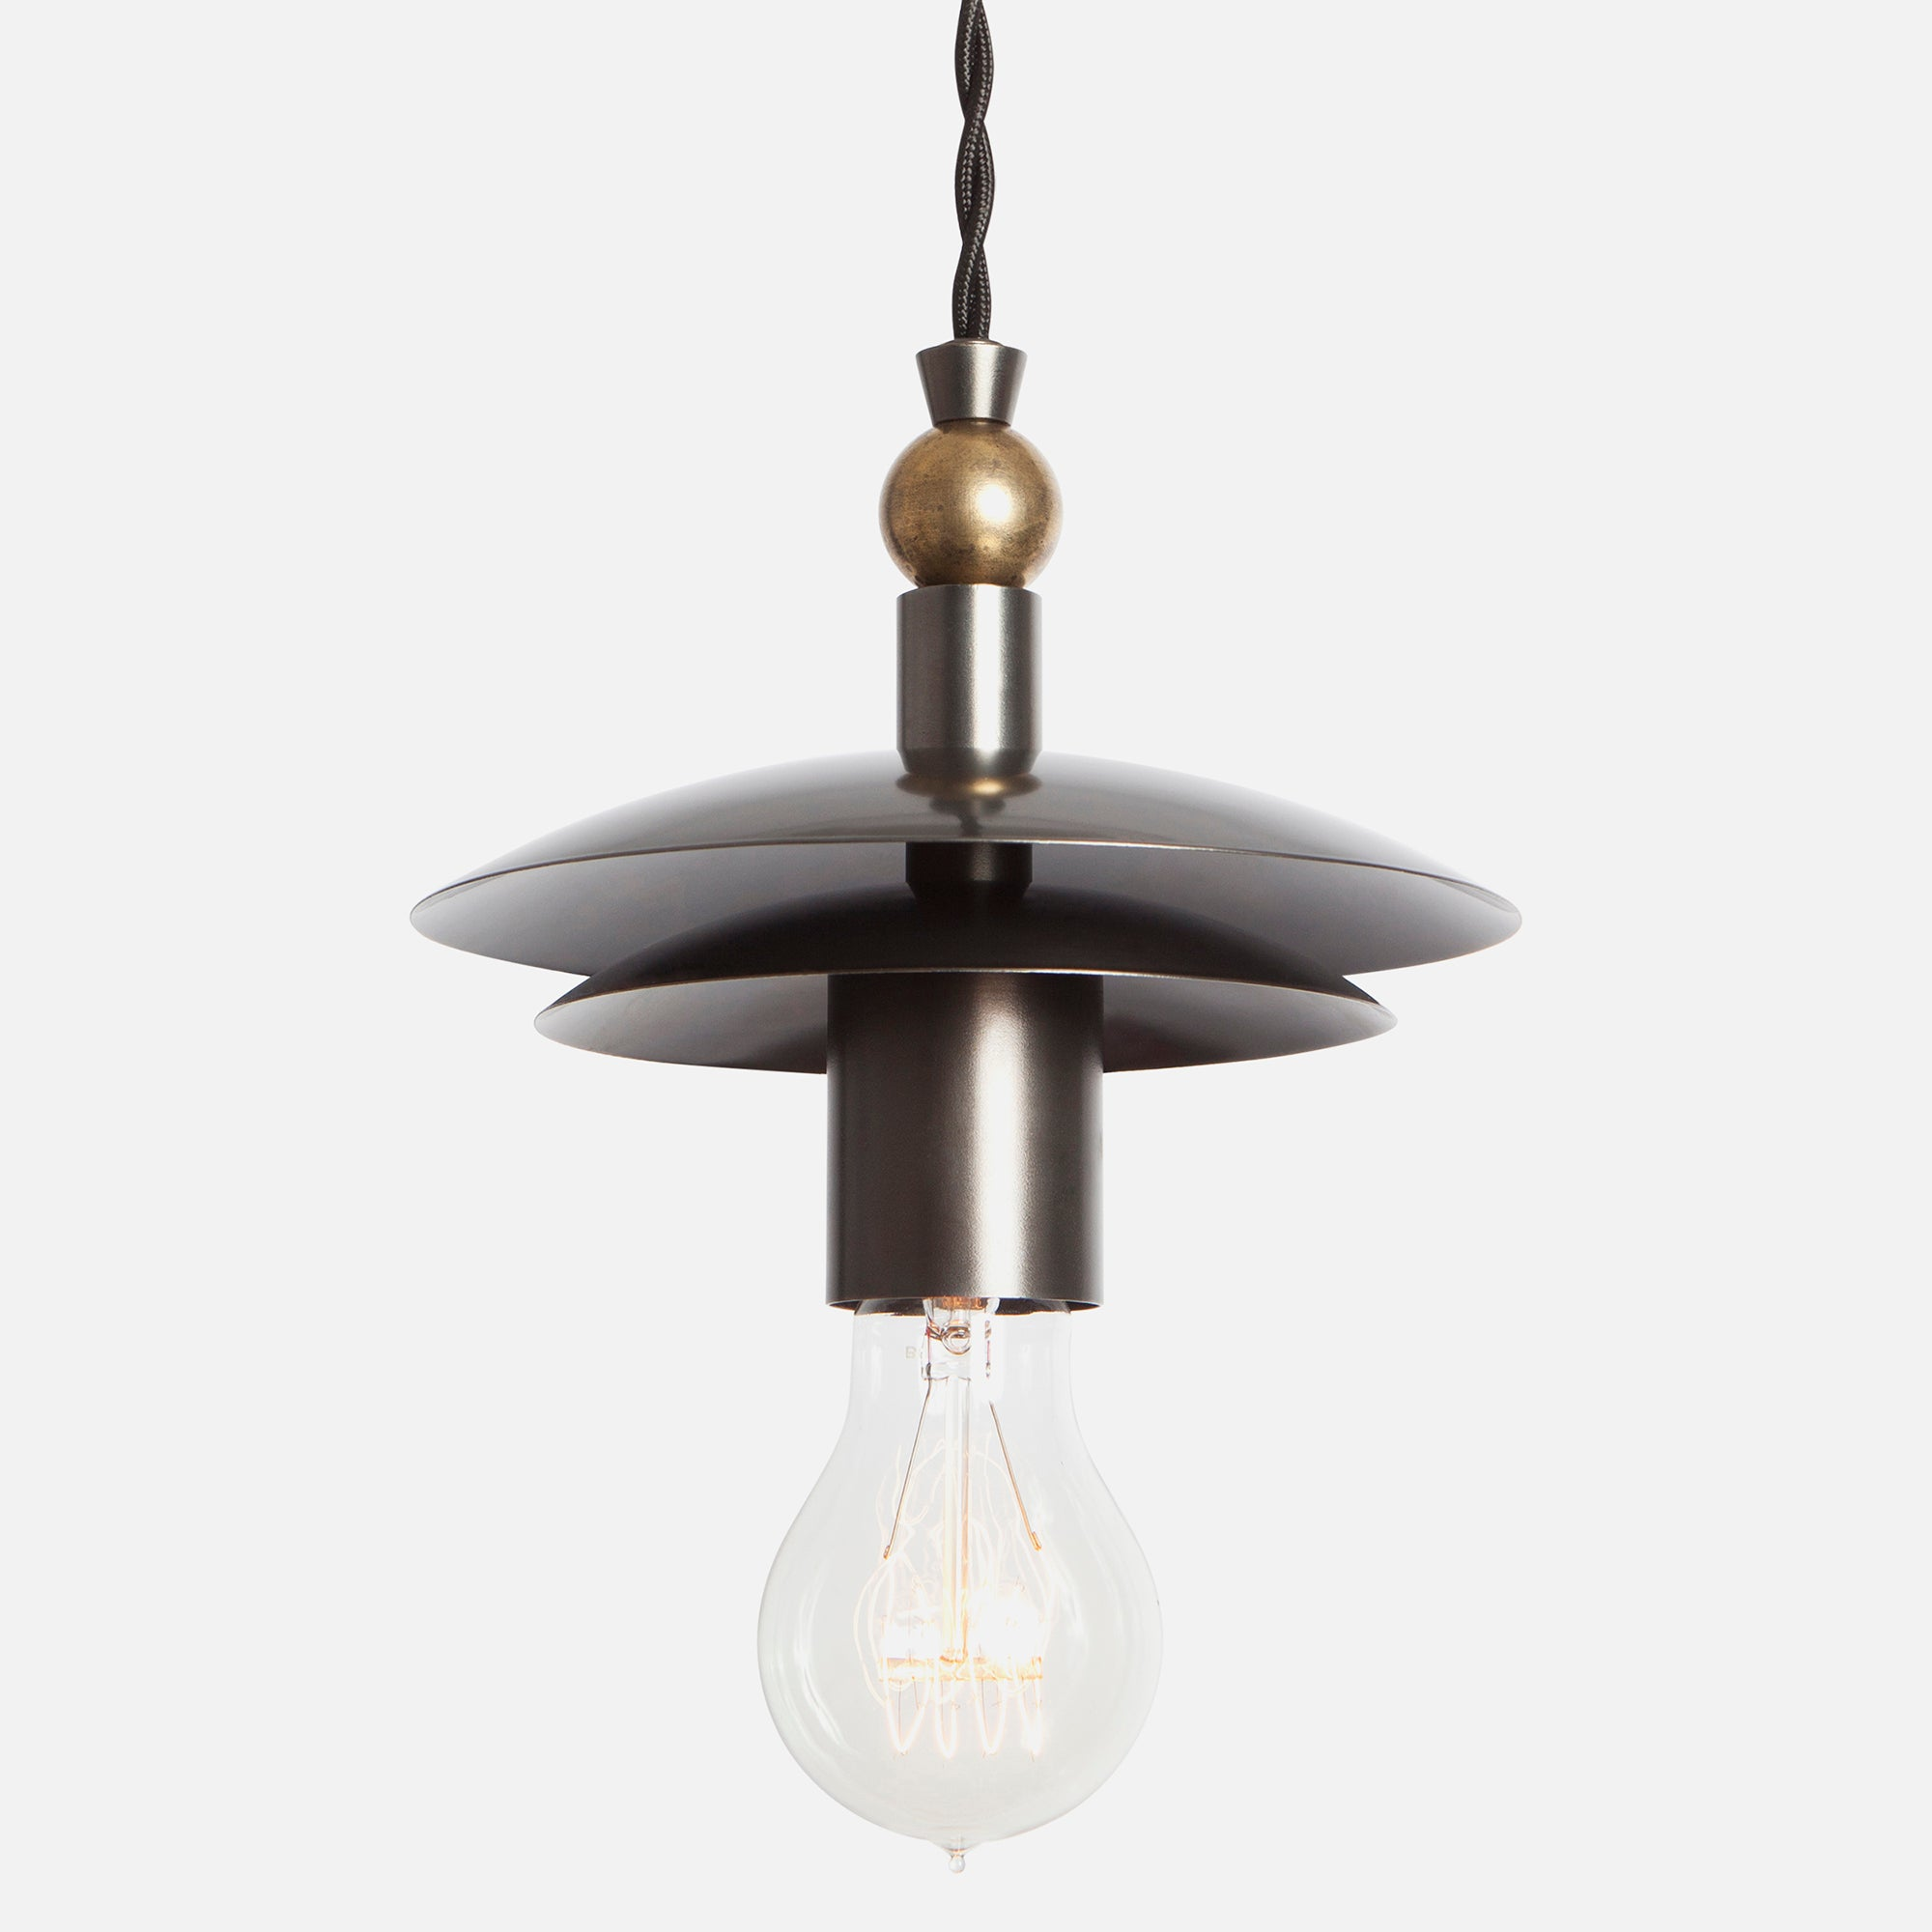 Brancusi Dome Pendant Light